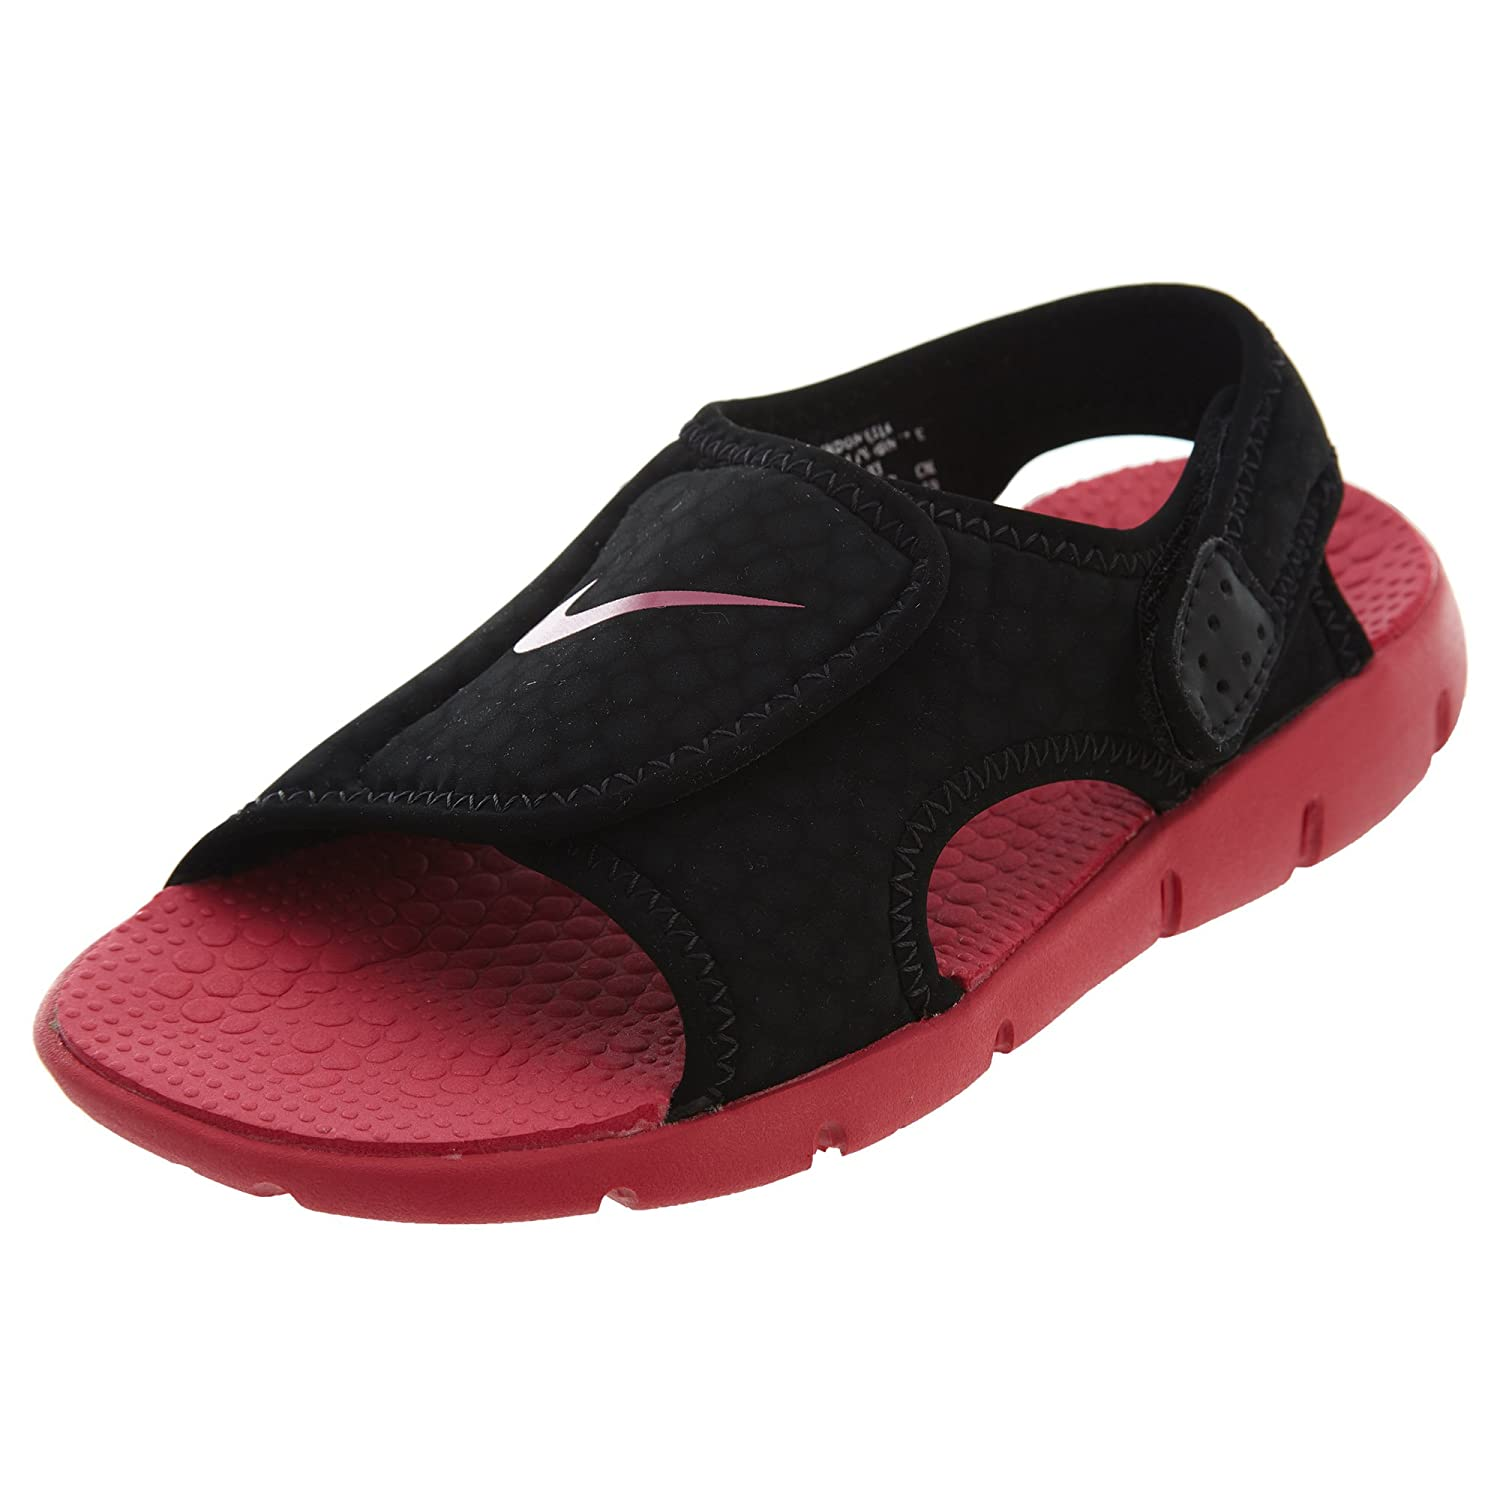 9c990a6c9efc Nike Sunray Adjust 4 (GS PS) Girls Sandals (13C